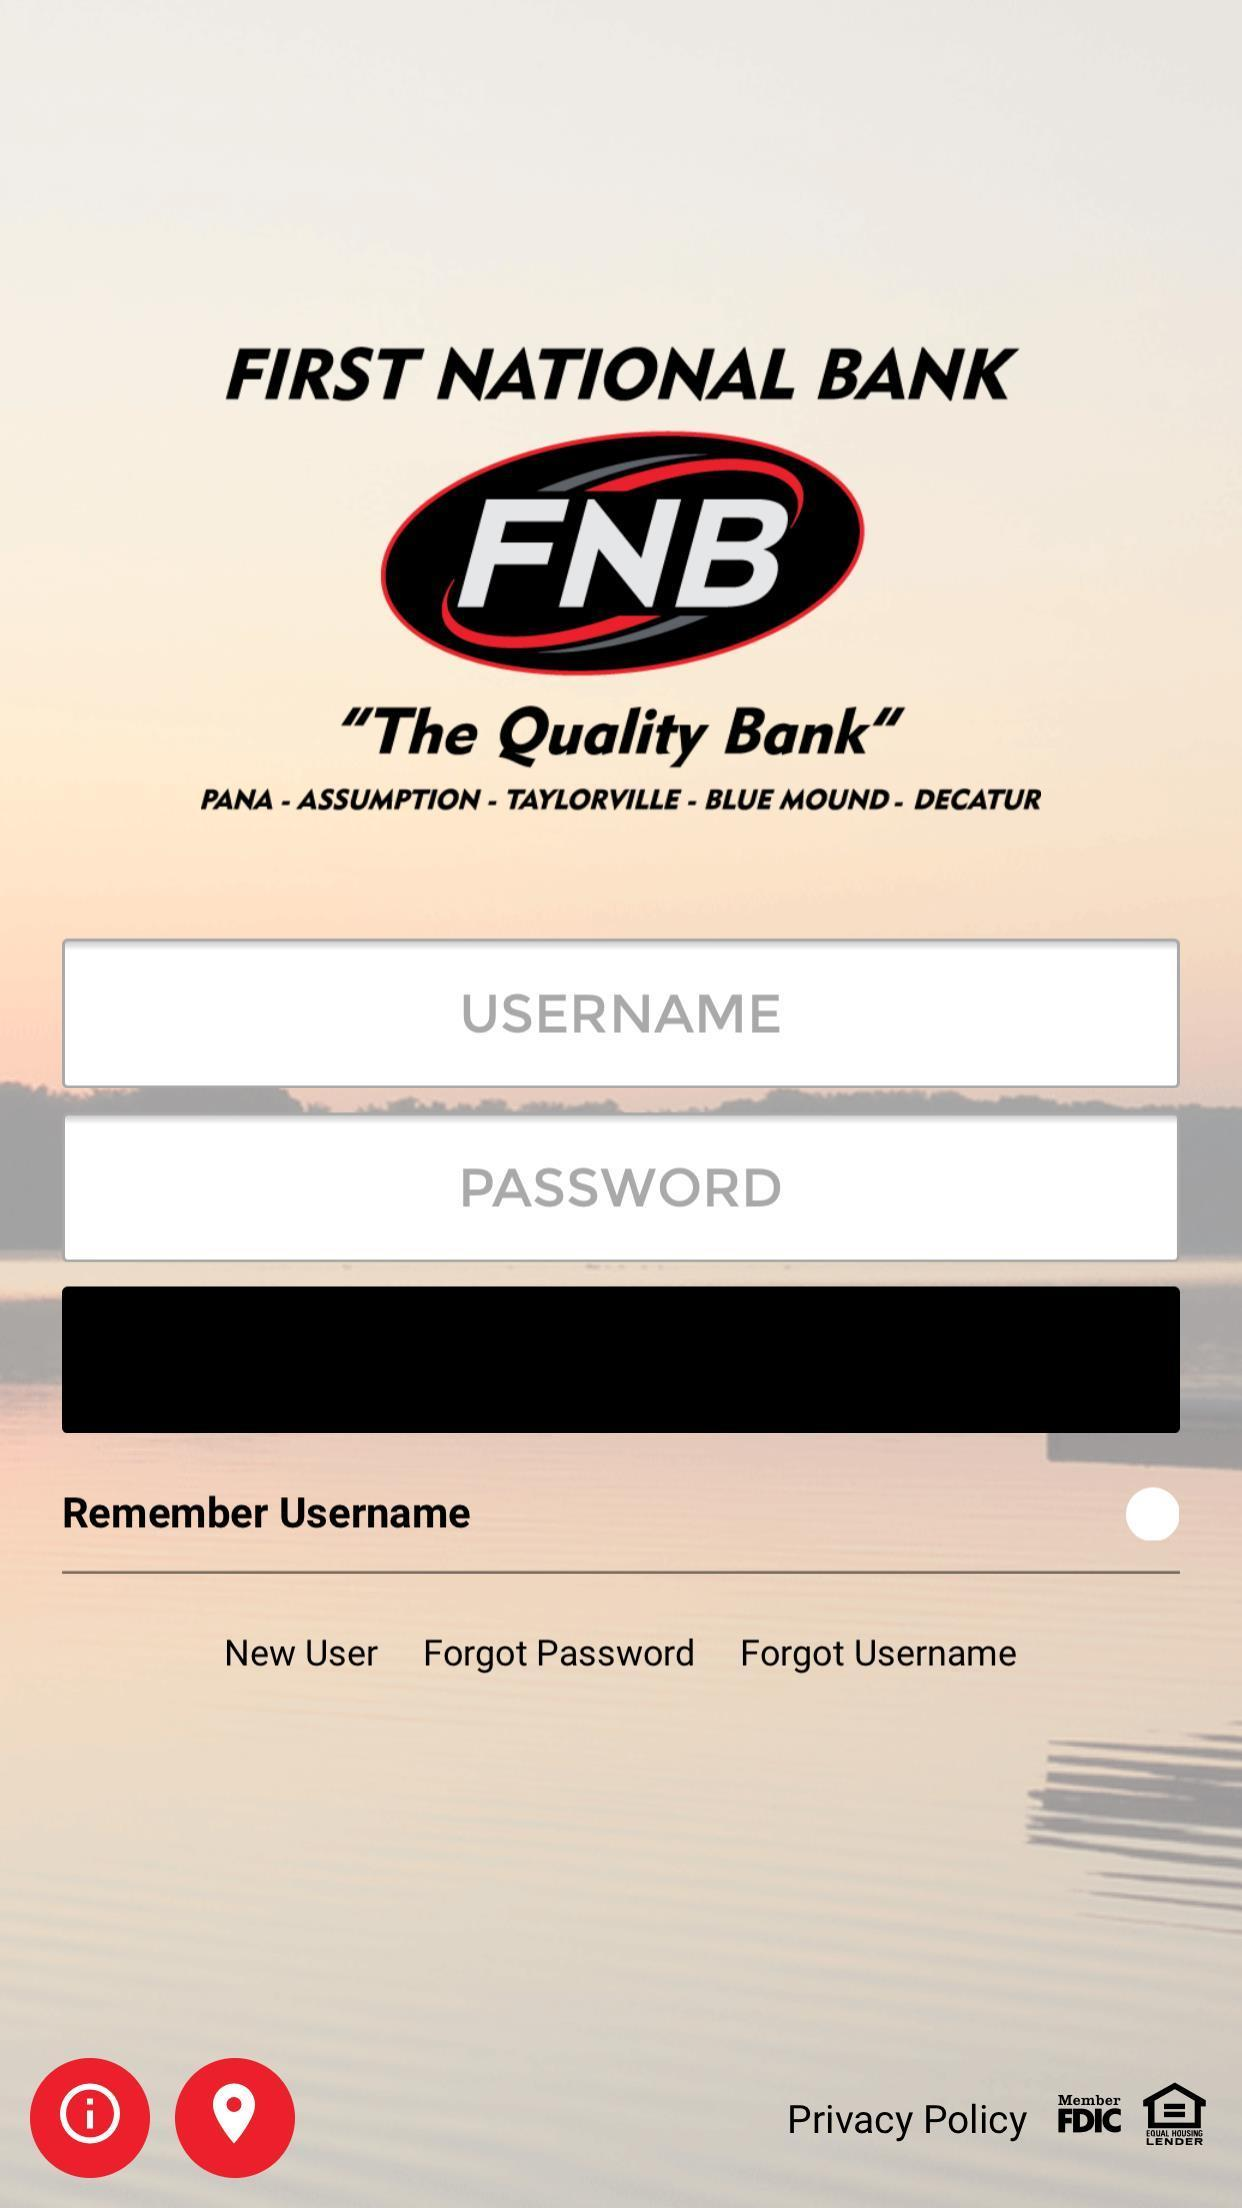 First National Bank of Pana for Android - APK Download